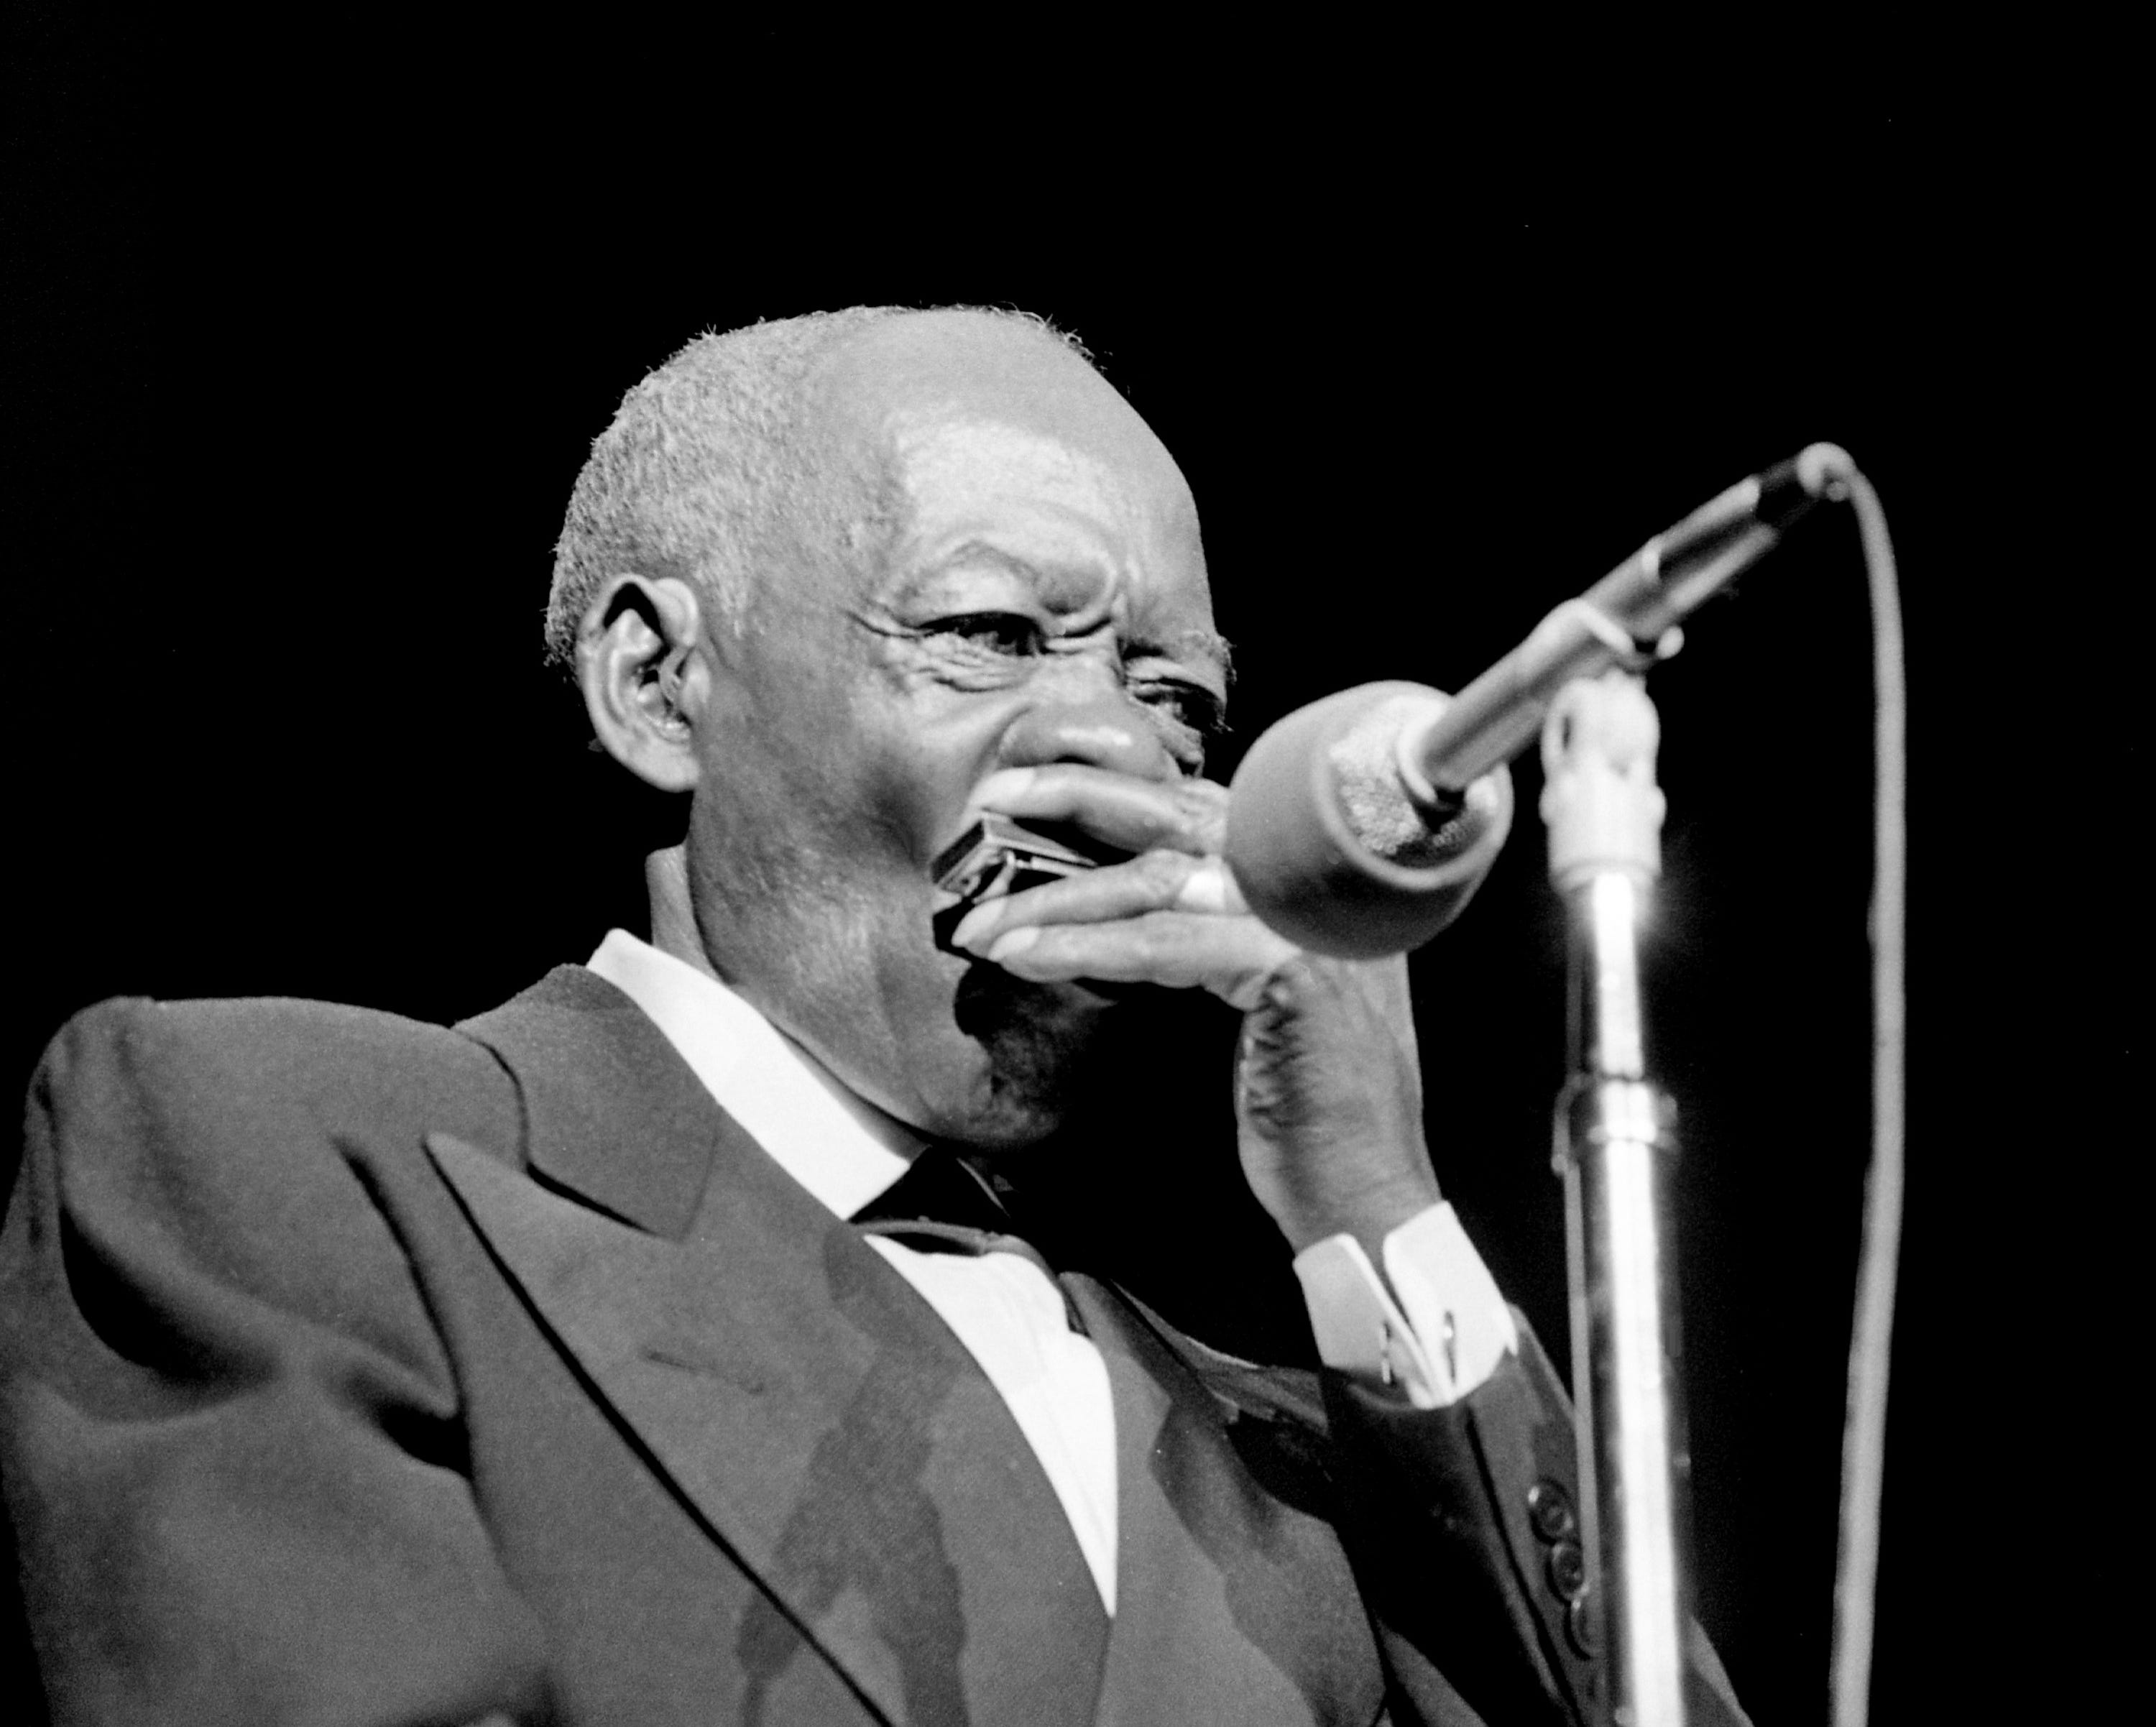 """Veteran harmonica player DeFord Bailey makes his Grand Ole Opry House debut Dec. 14, 1974, with """"It Ain't Gonna Rain No More,"""" """"The Pan American Blues"""" and """"Fox Chase."""" Bailey, who first performed on the Opry a month after its debut in 1925, left it in 1941."""